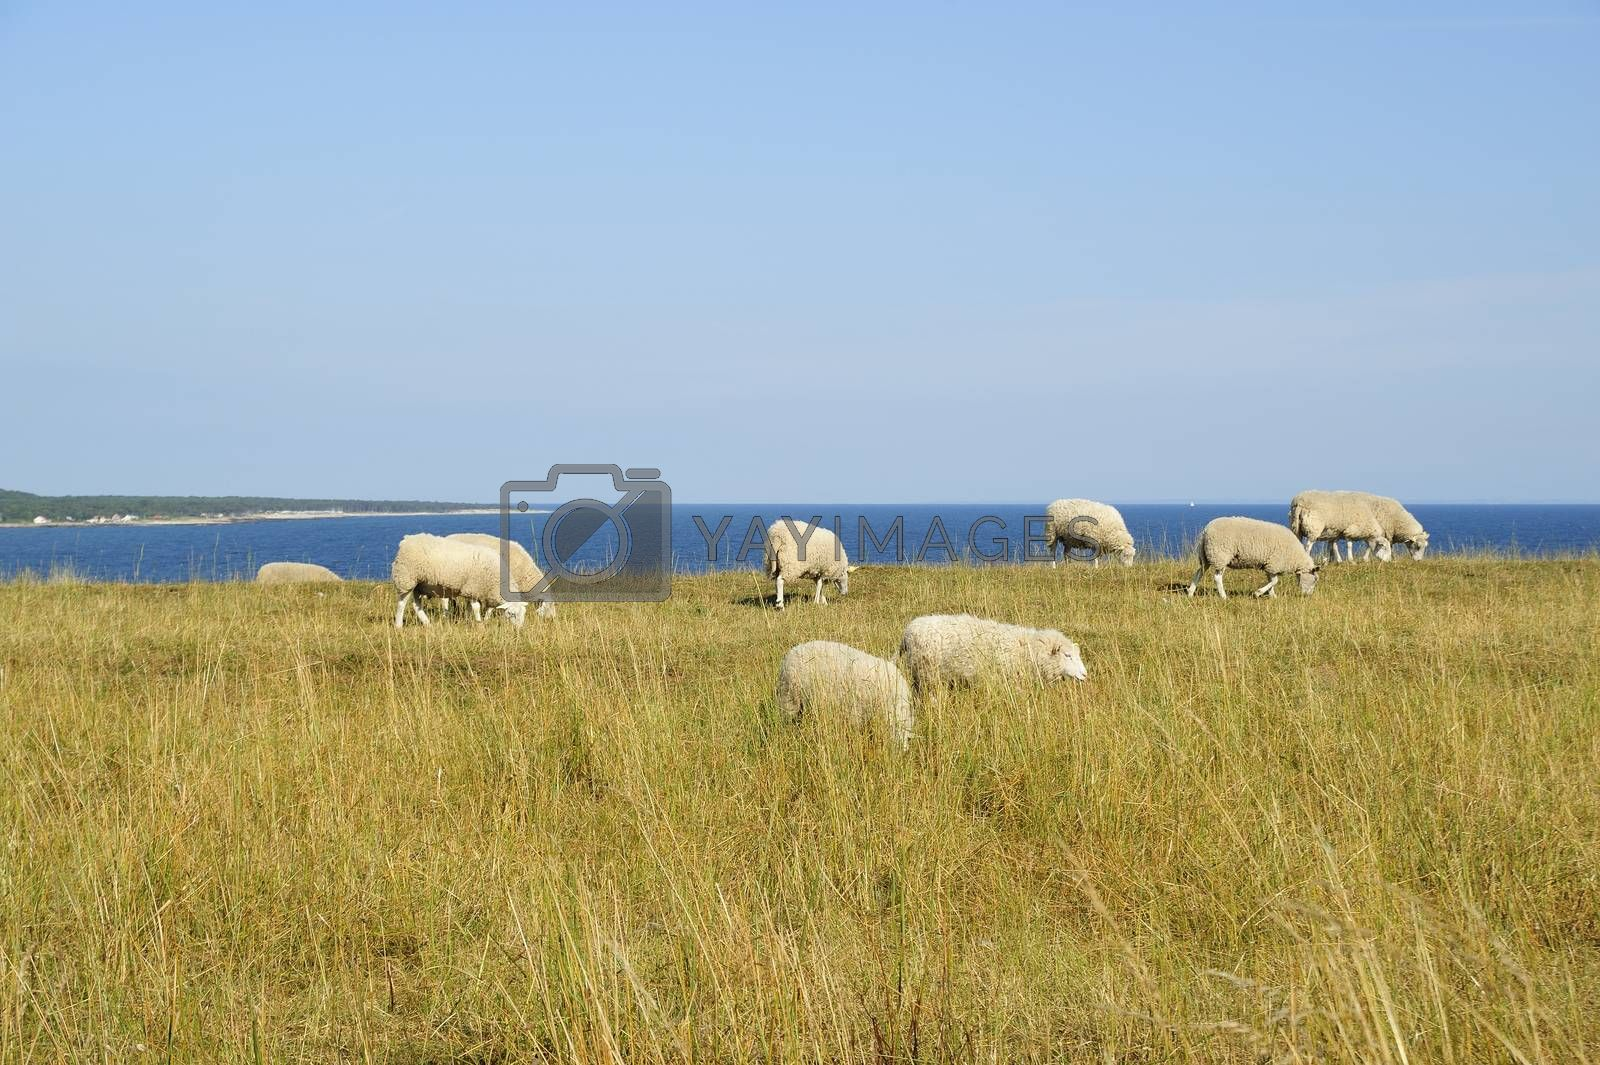 Grazing sheep in Skane - Sweden on a bright green field. Some of them are lying down.